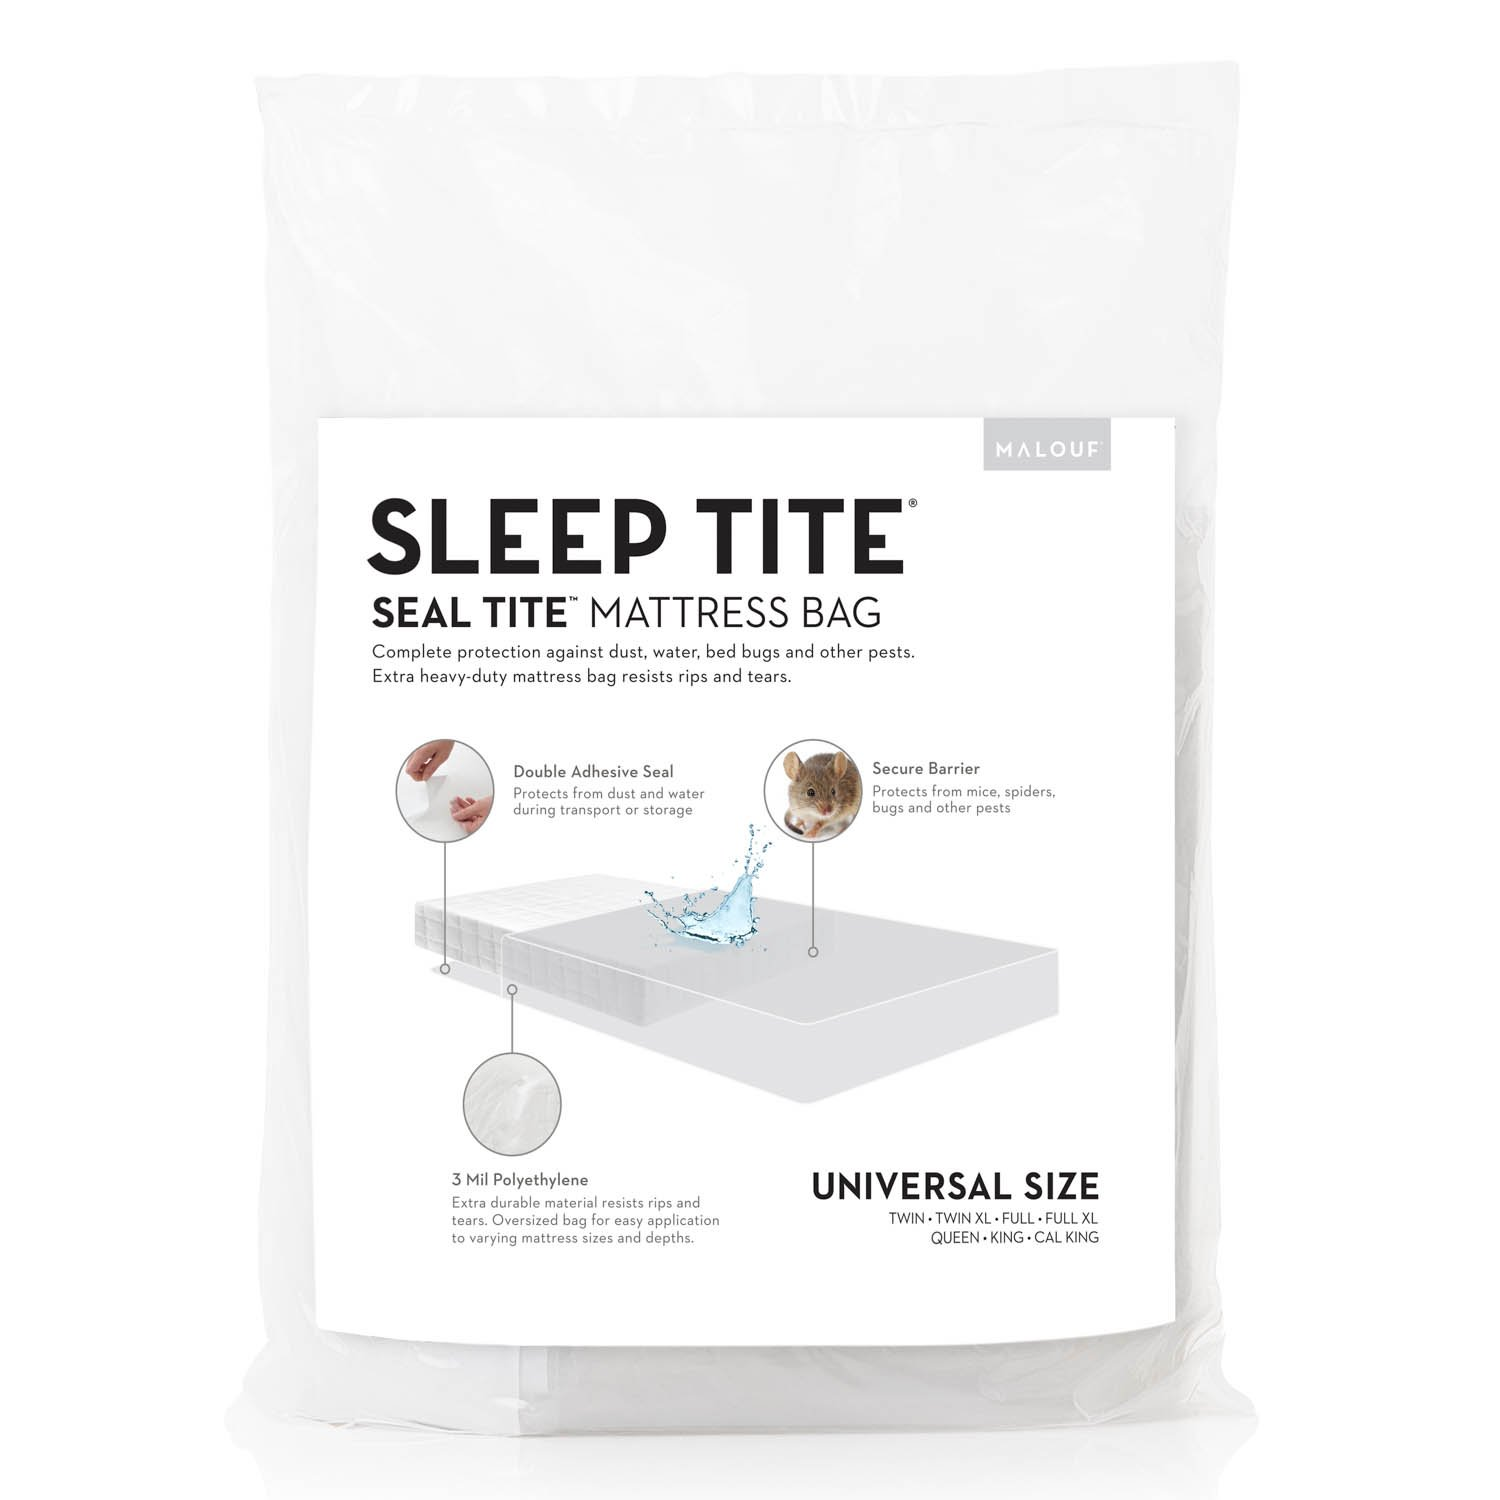 SEAL TITE Heavy Duty Sealable Mattress Storage Bag - Protects Your Mattress While Moving or in Storage - King/California King